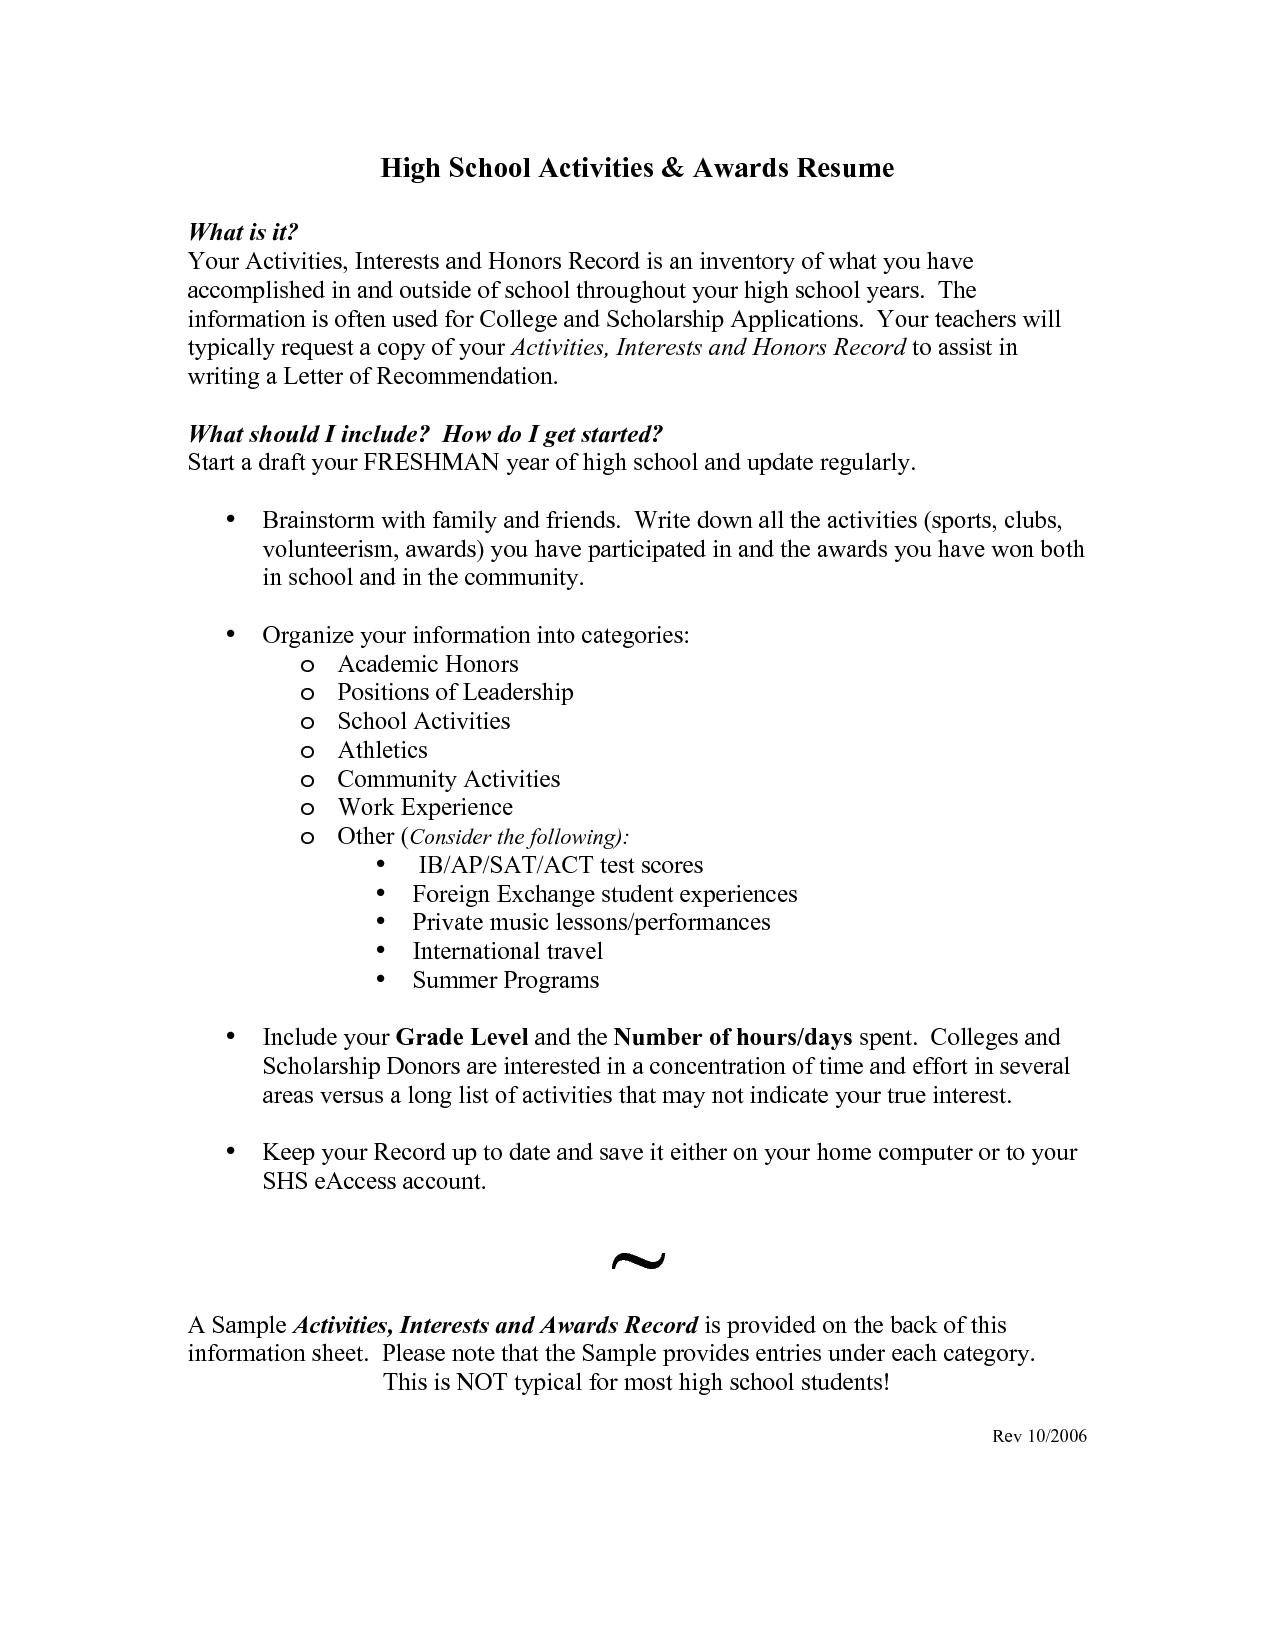 Examples of high school resumes for college